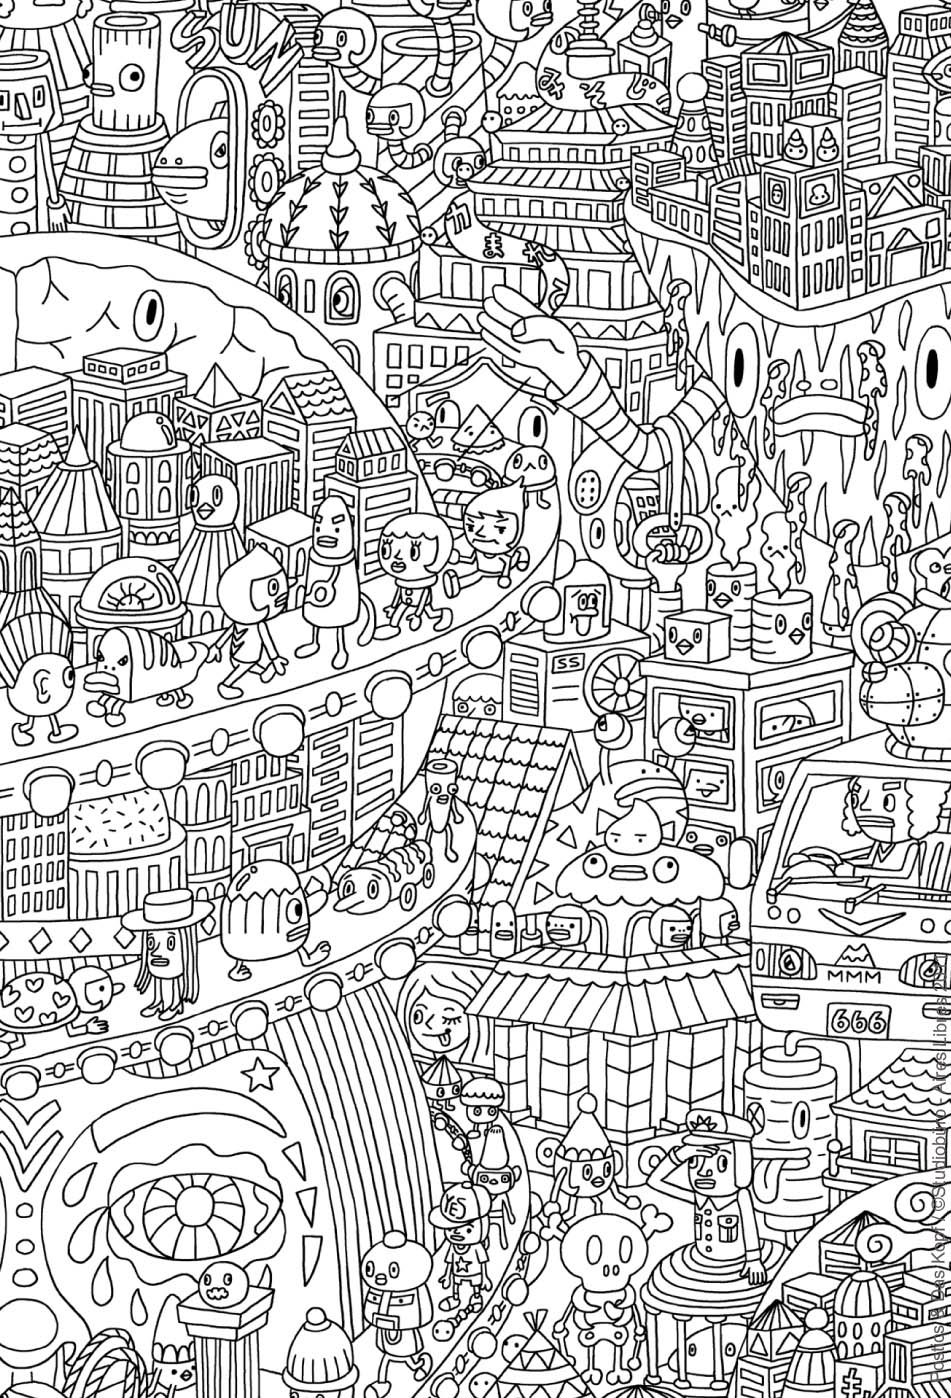 Free printable coloring pages for adults city - Coloriage Pour Adultes Coloring Pages For Adults Free Coloring Page A Funny City